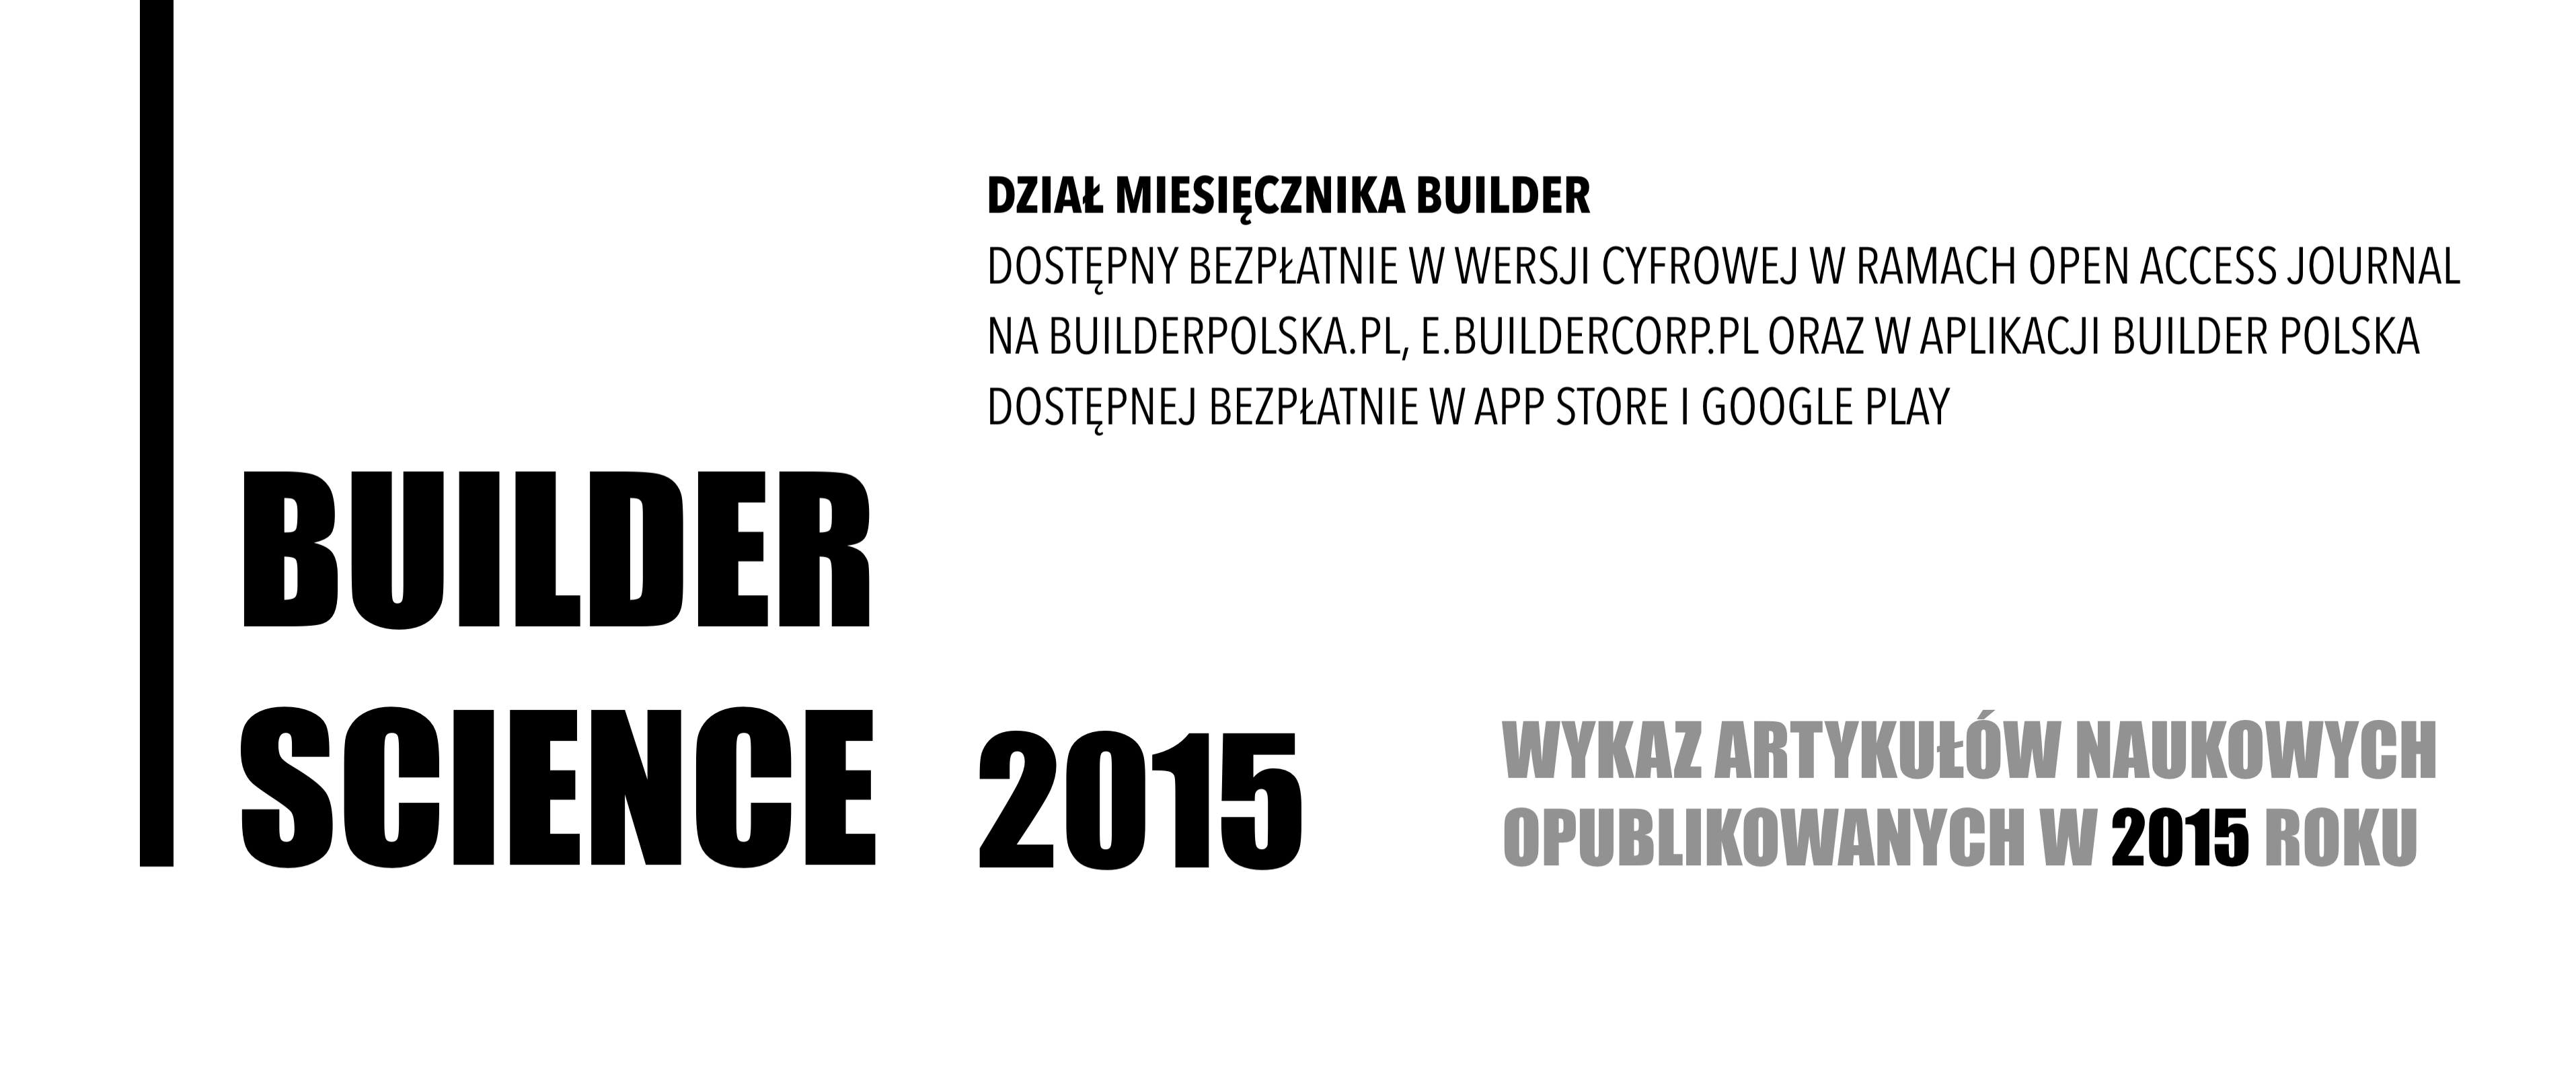 BUILDER SCIENCE 2015